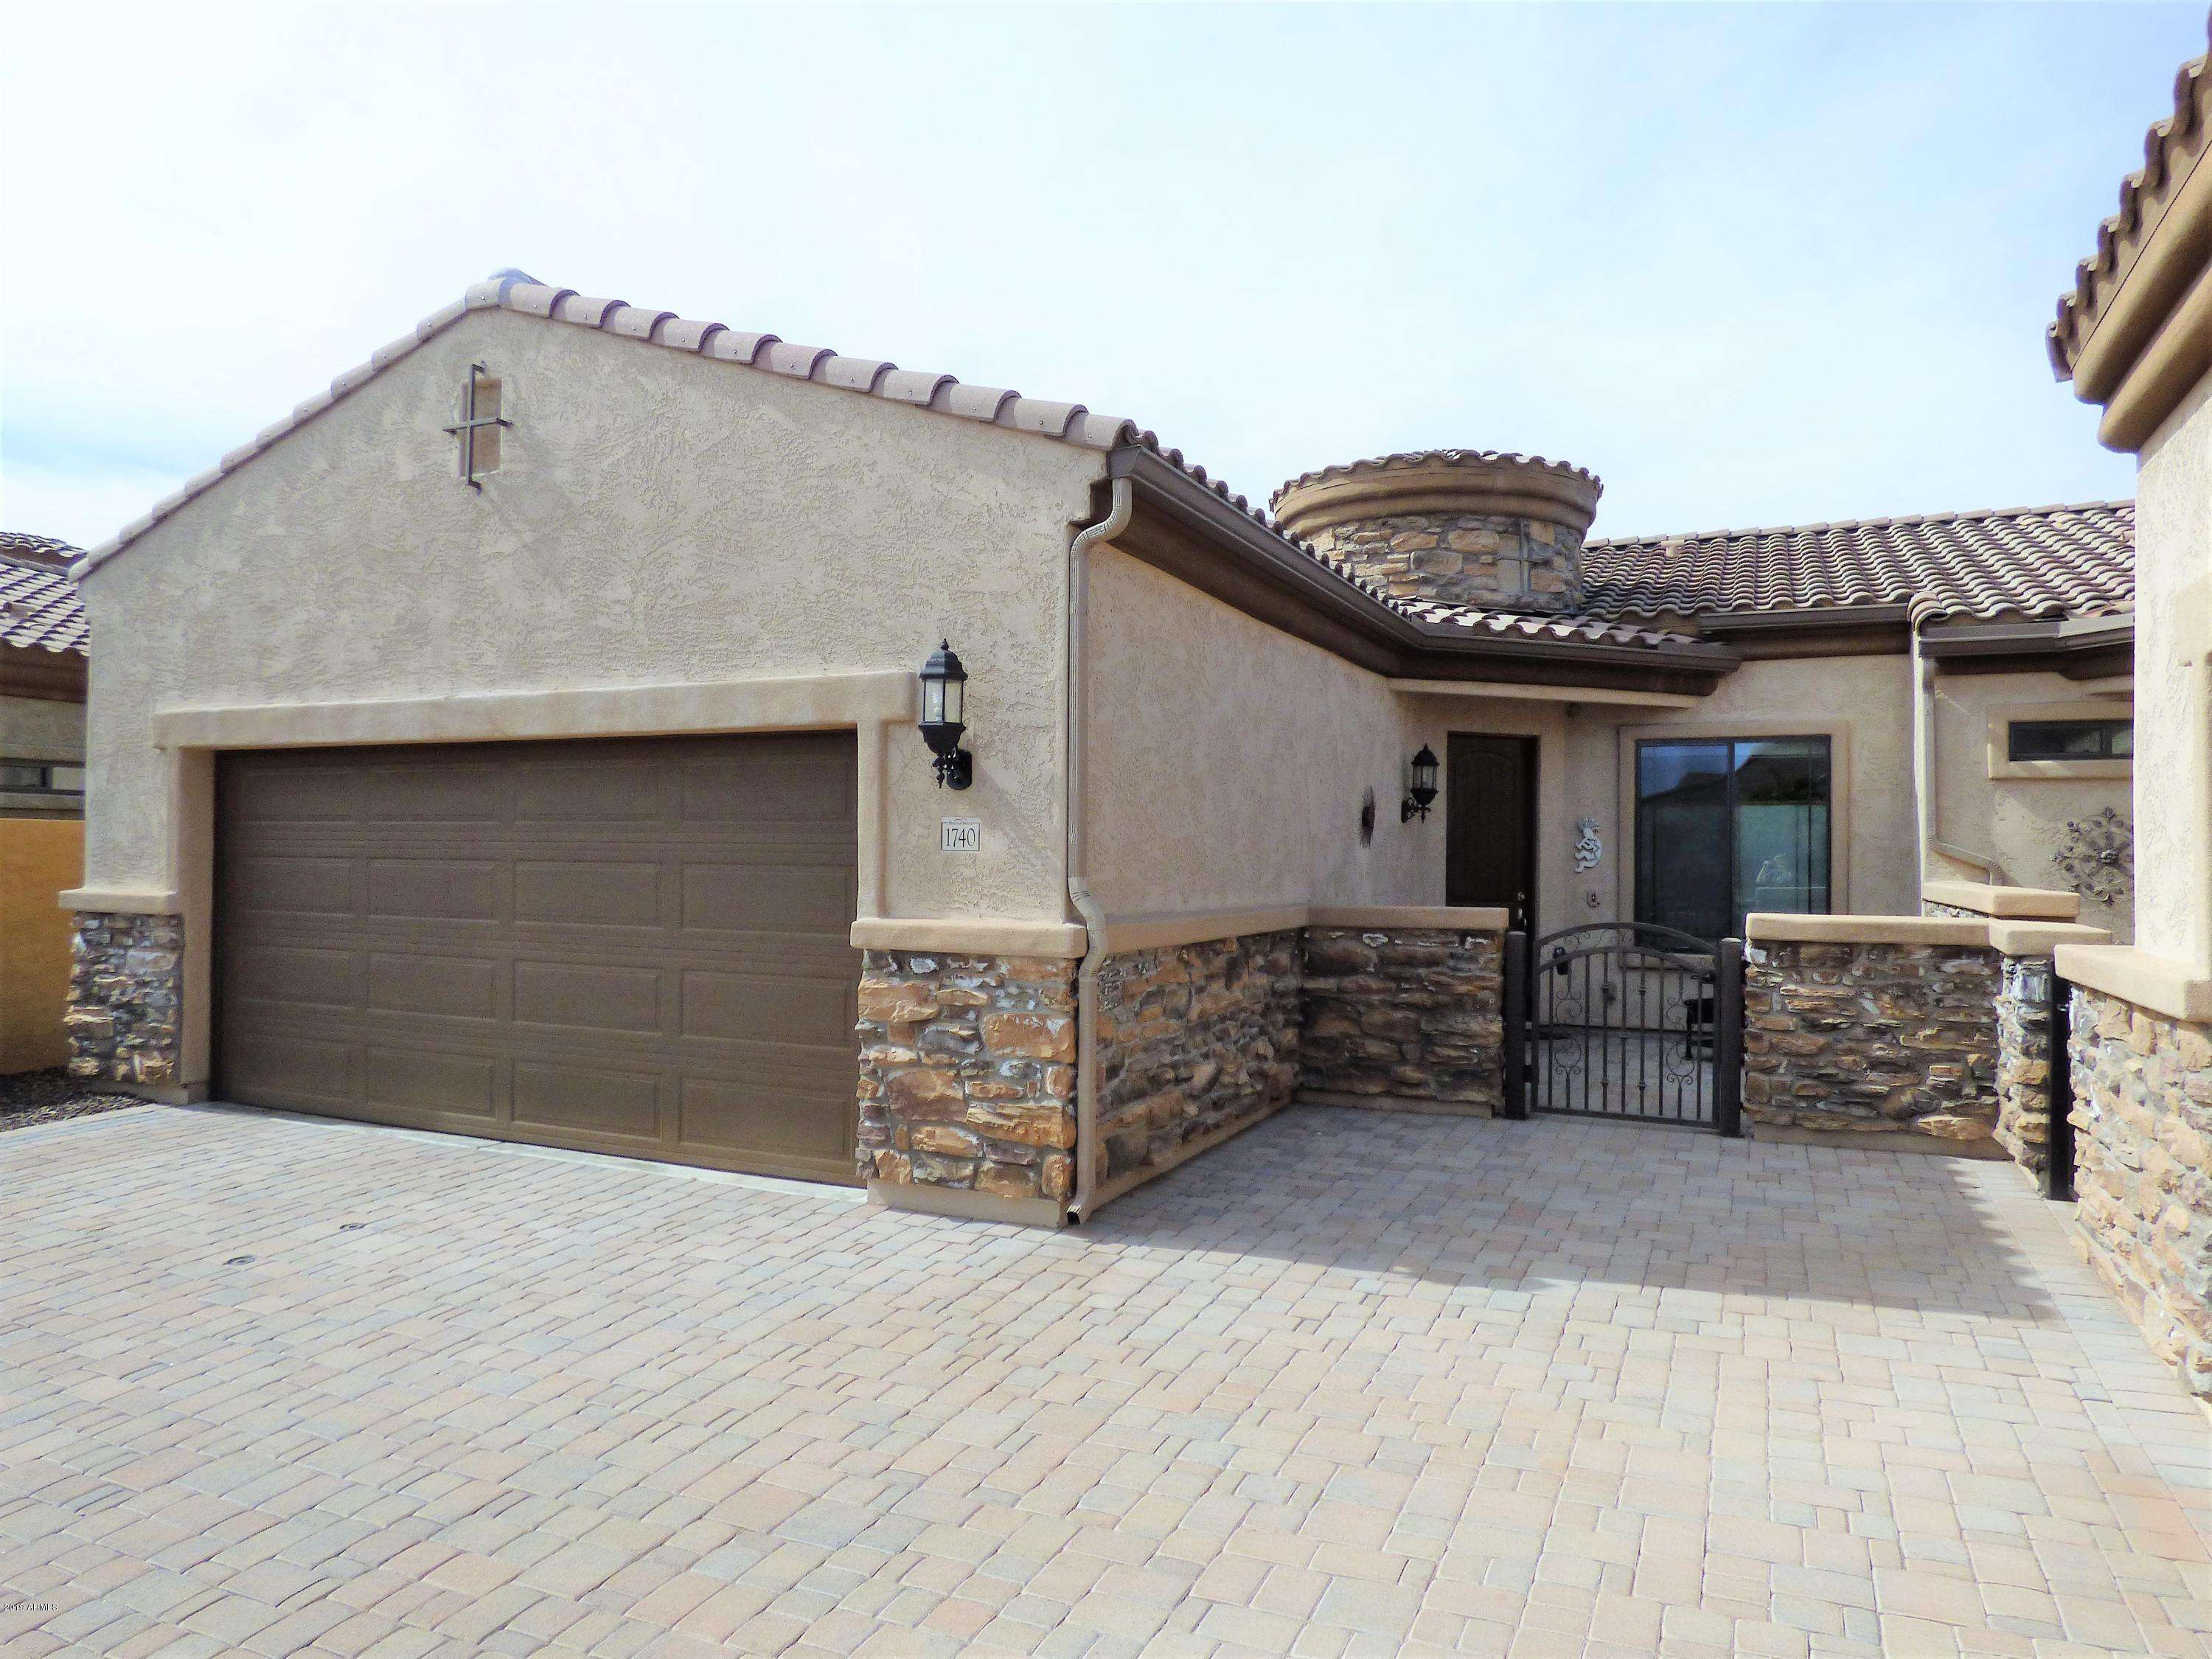 Photo of 1740 N TROWBRIDGE --, Mesa, AZ 85207